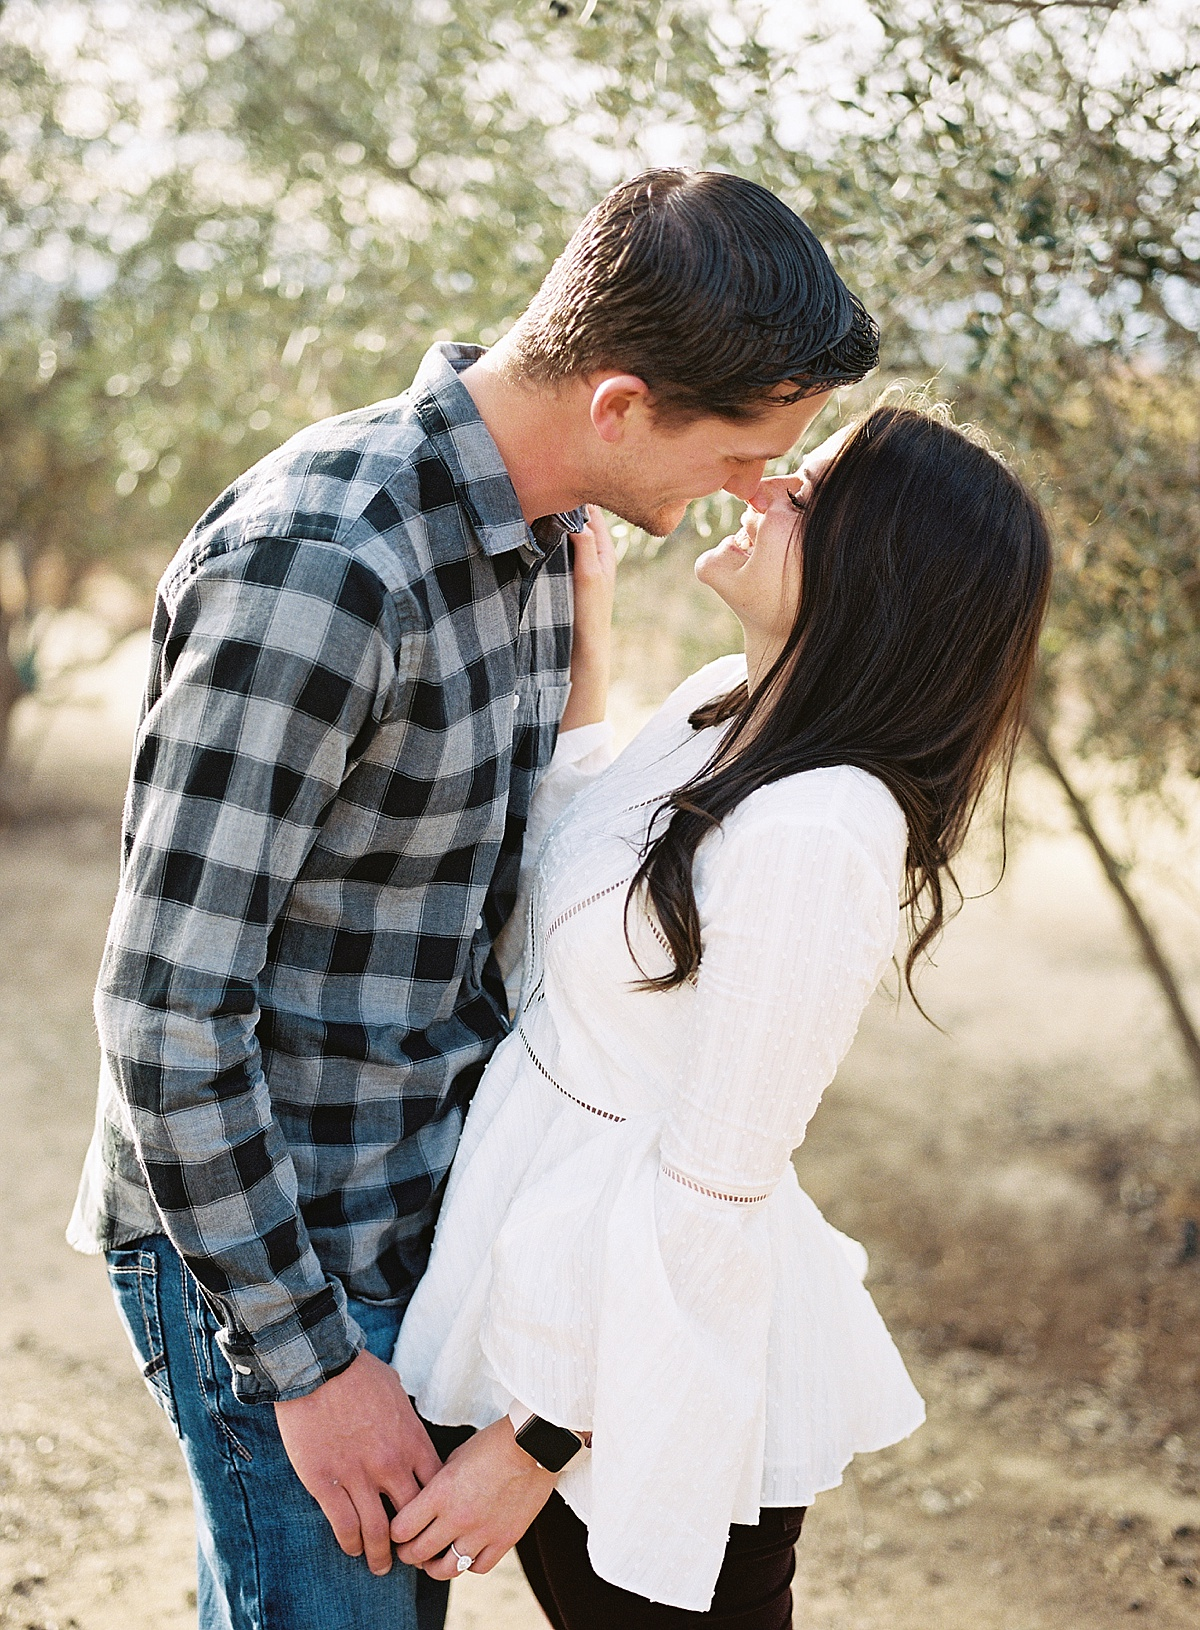 temecula-vineyard-engagement-proposal_0013.jpg